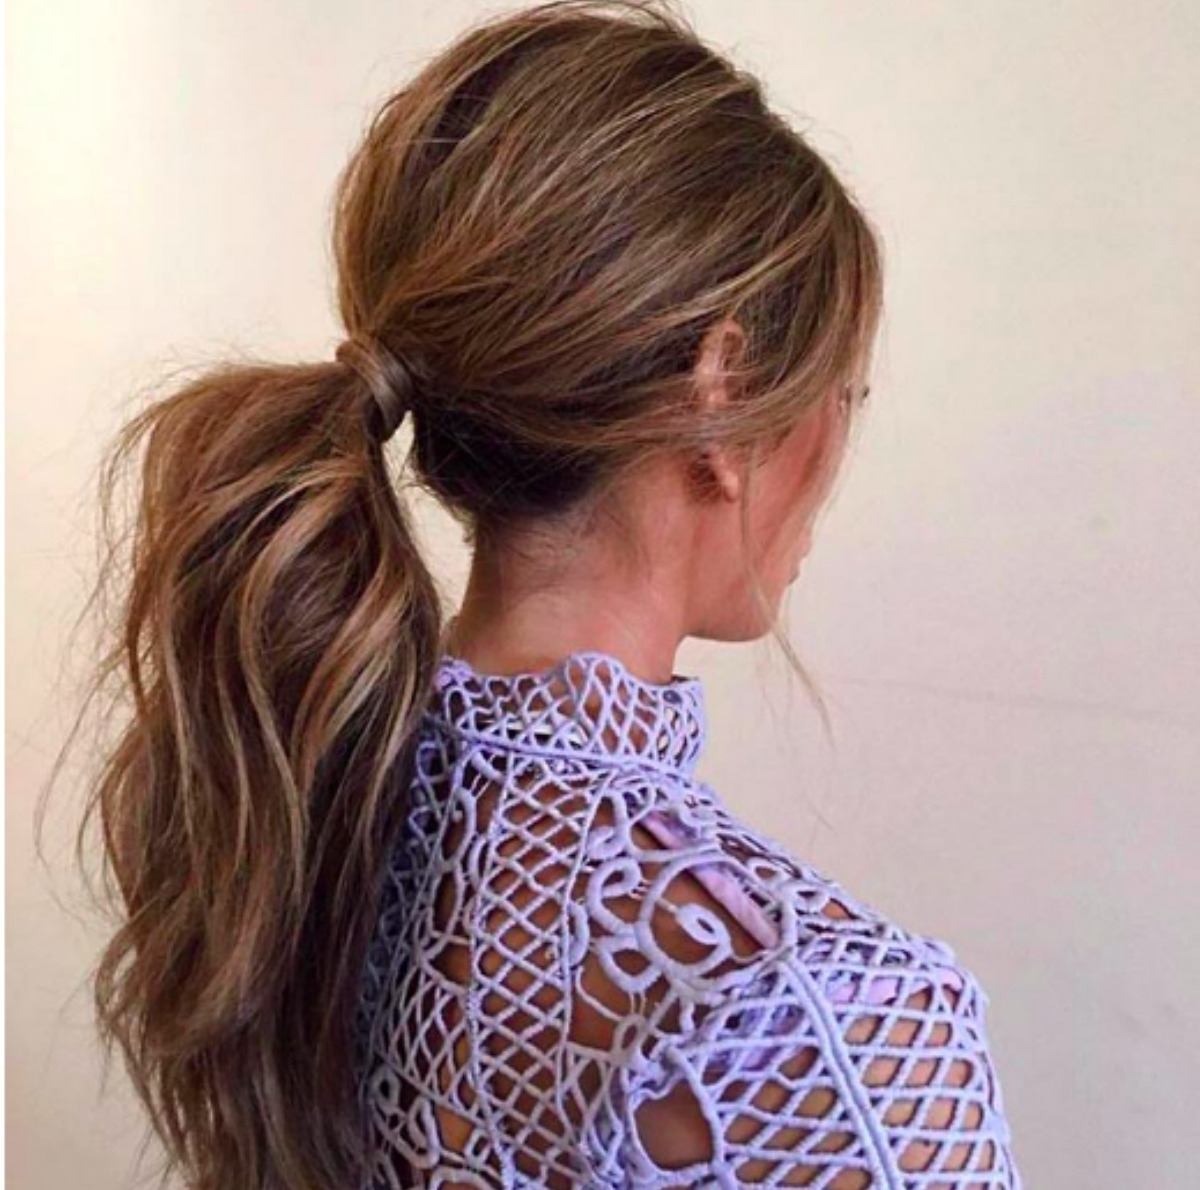 Celebrity Hairstylist Demonstrates Easy Voluminous Ponytail Tutorial (View 4 of 20)